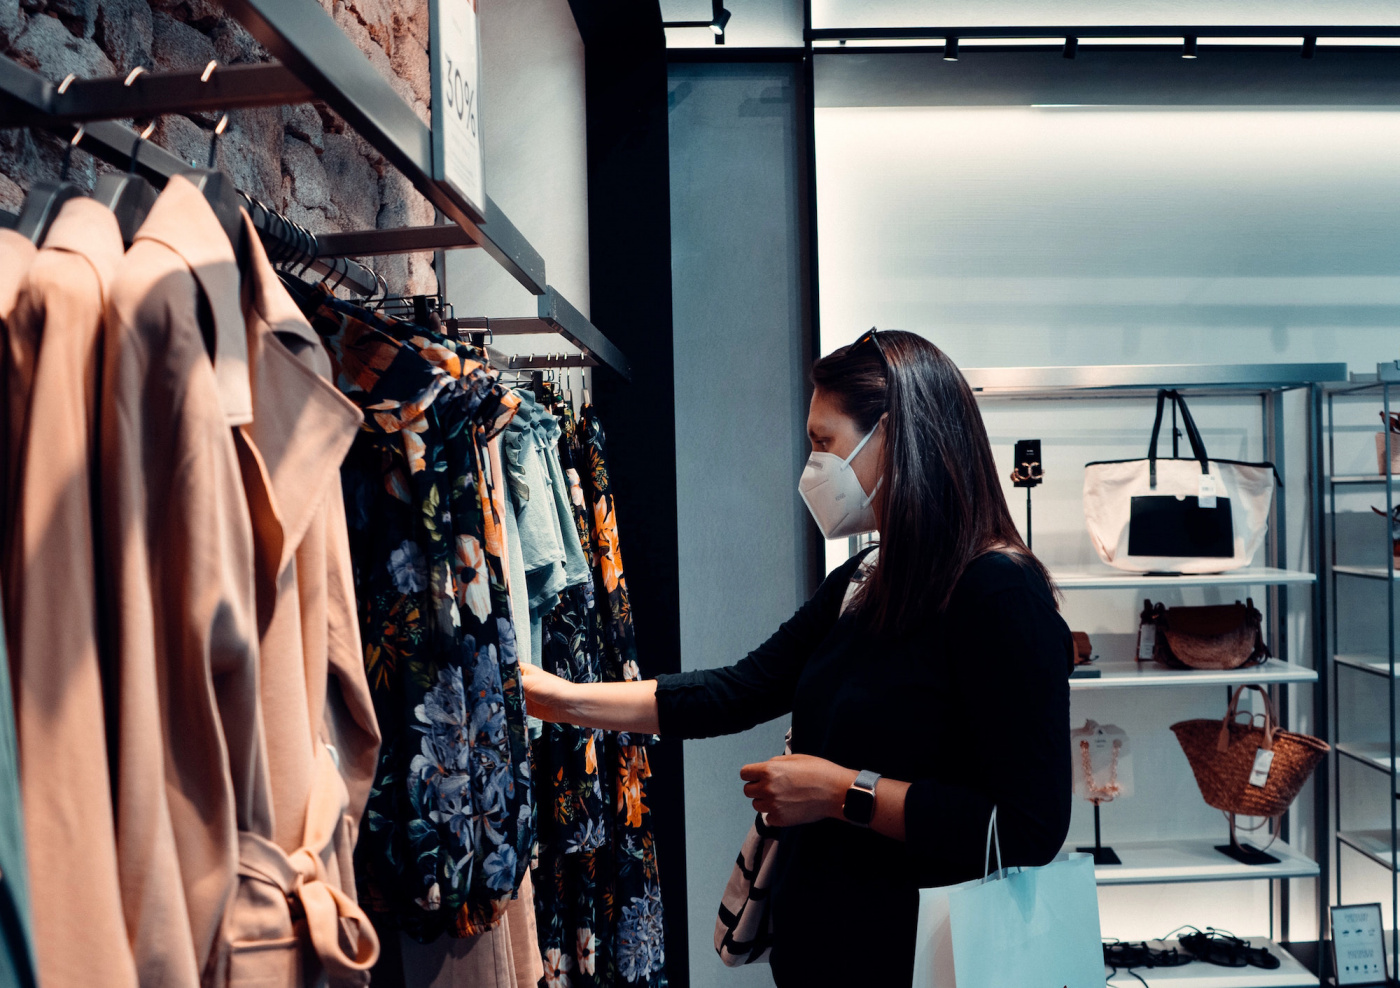 Redesigning The Store: 10 Techniques For Future-Proof Customer Experiences